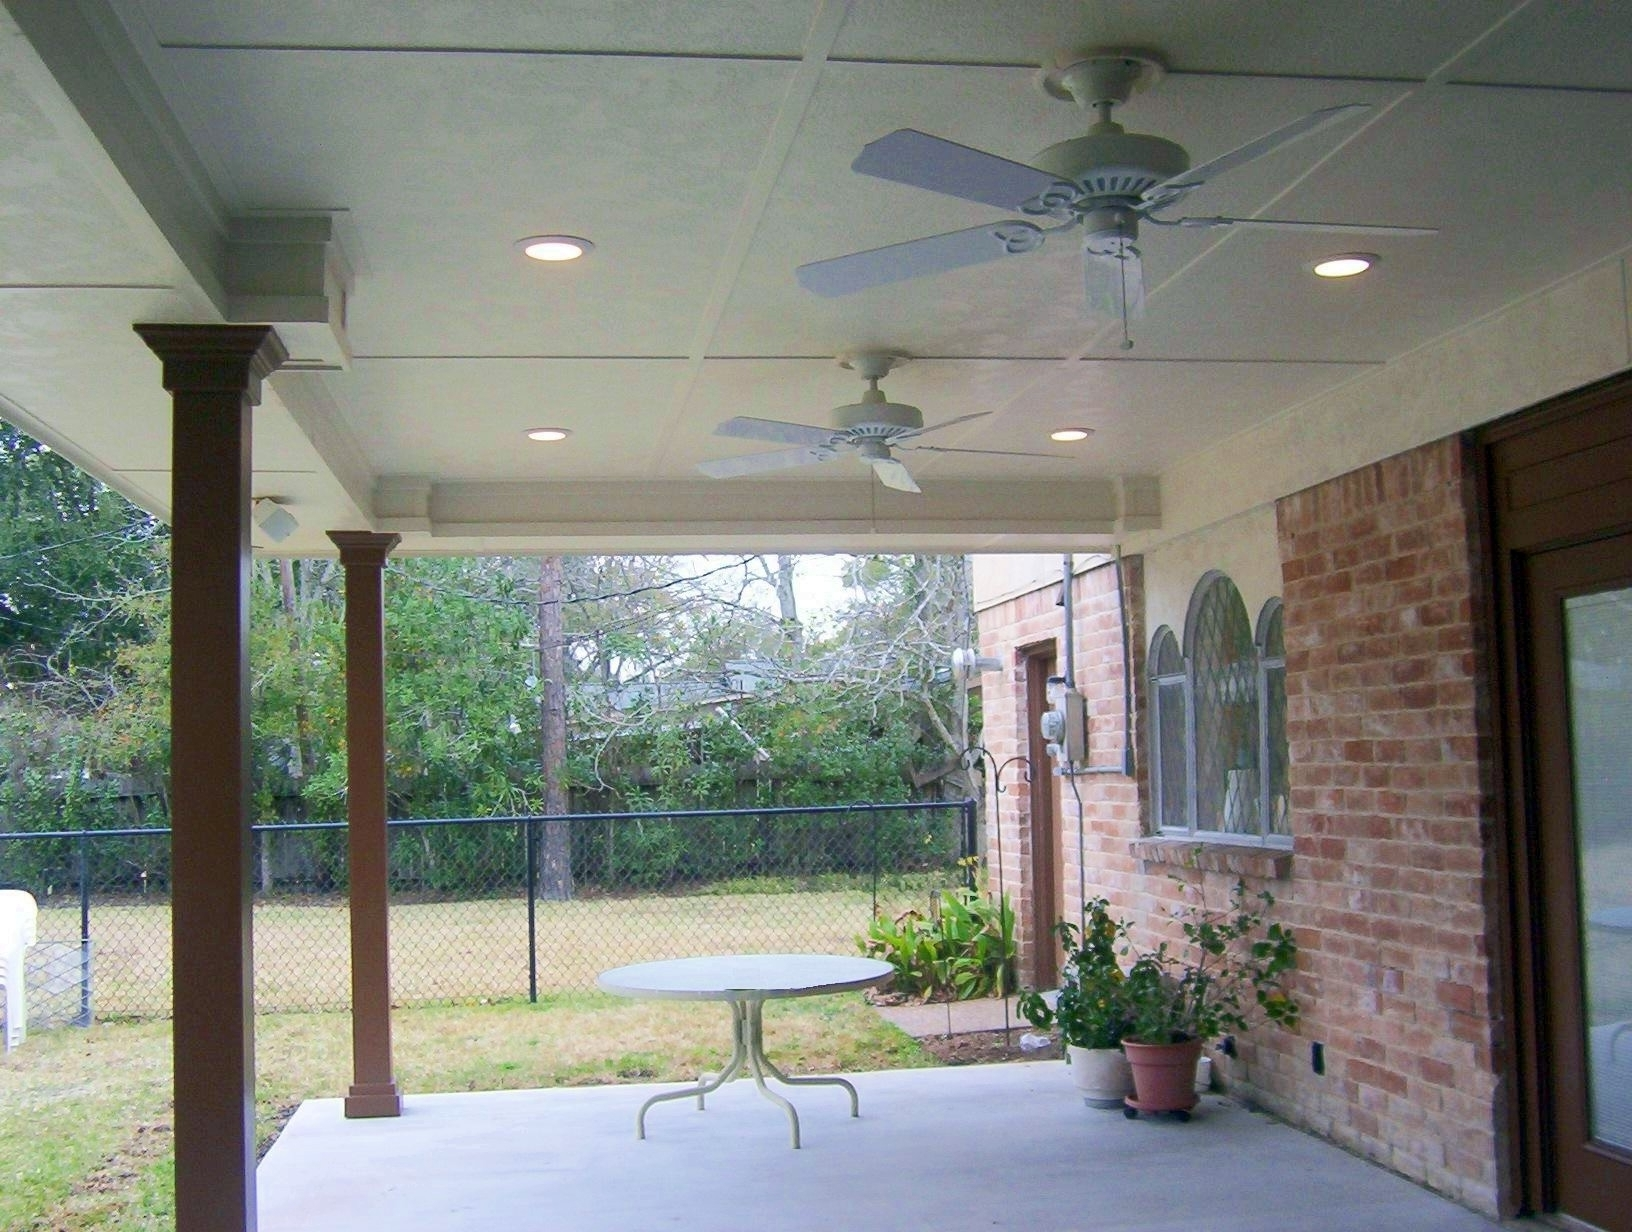 Fabulous Outdoor Patio Ceiling Fans Cool Outdoor Ceiling Fans Patio For Newest Outdoor Ceiling Fans For Porch (View 6 of 20)